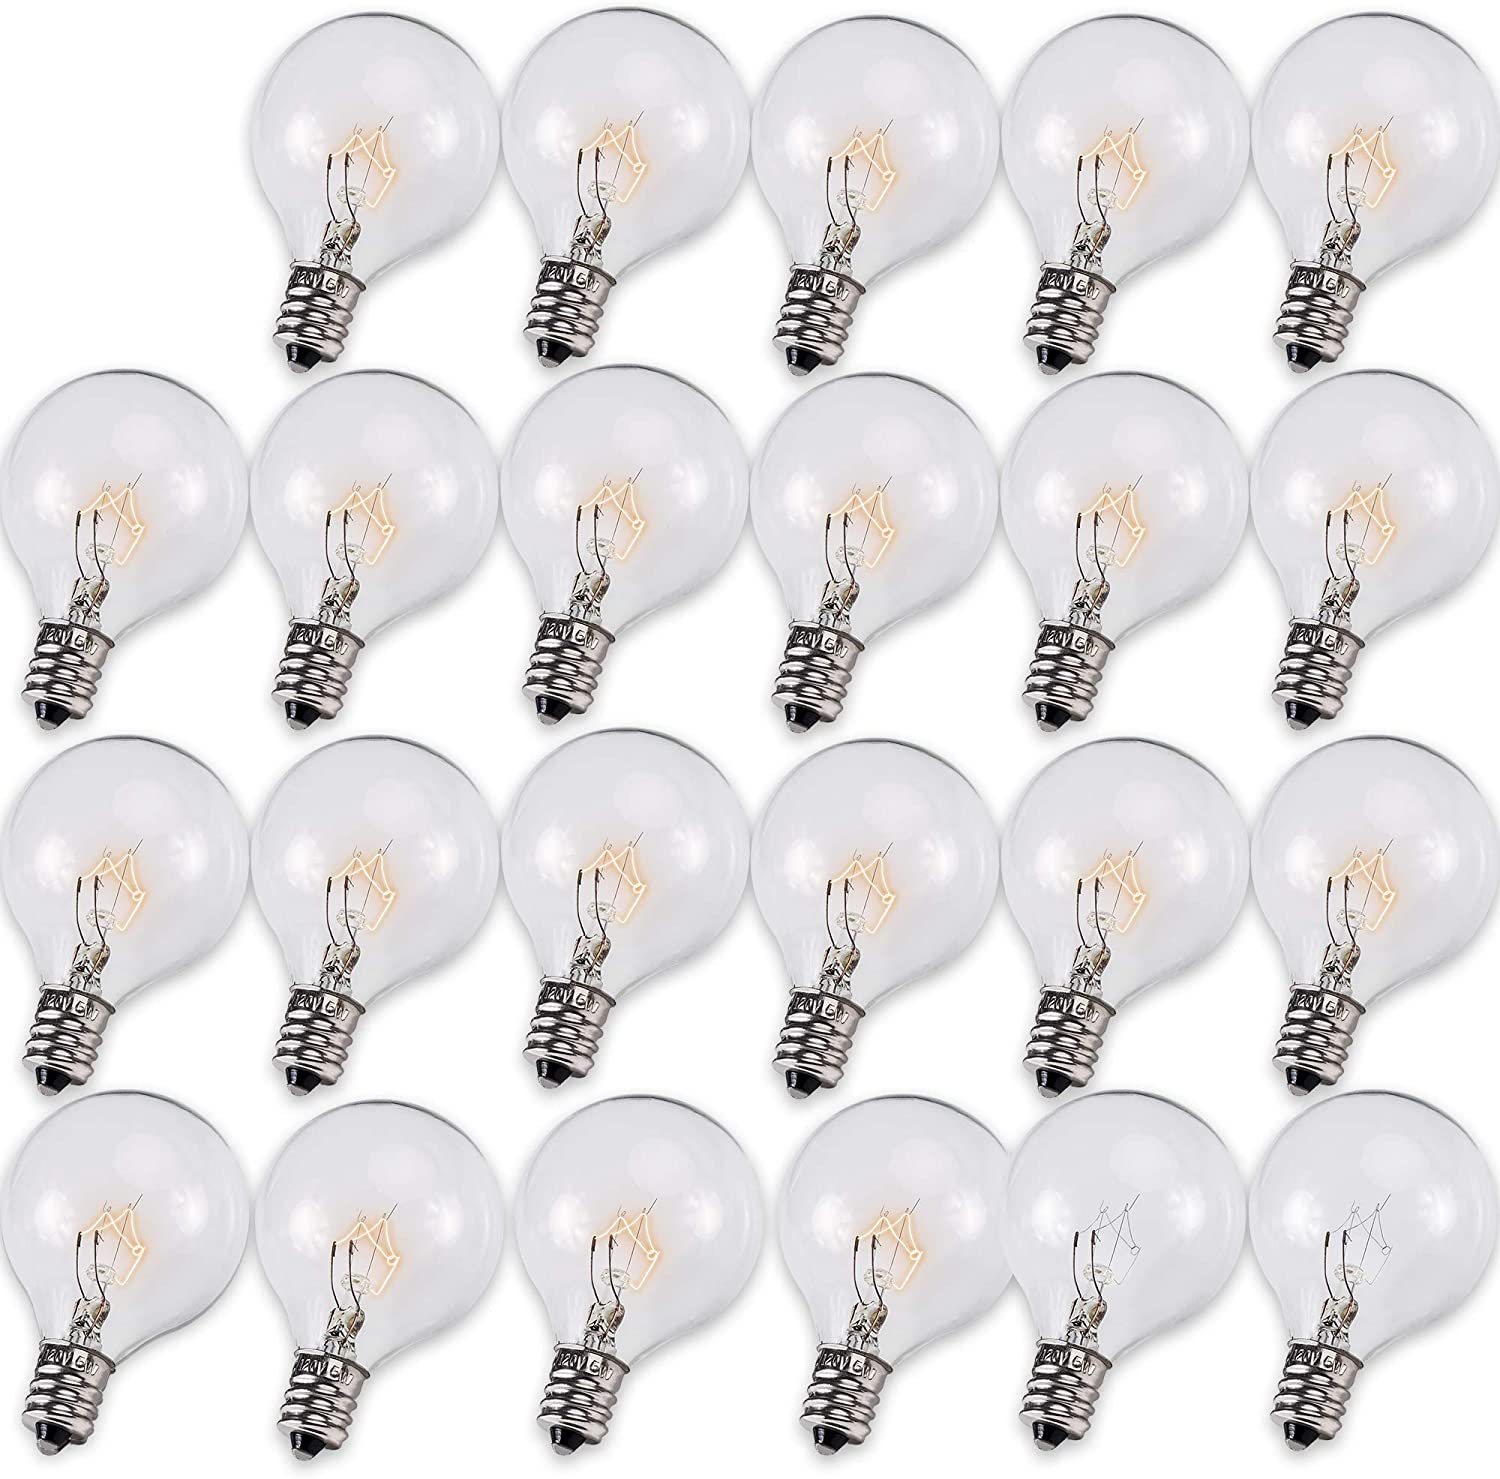 E12 G40 Bulb 120V 5W Pack of 25 Replacement Bulb by BlueStars - High Output Warm White Light 2500K 25 lm for String Lights Screw Base Outdoor/Indoor